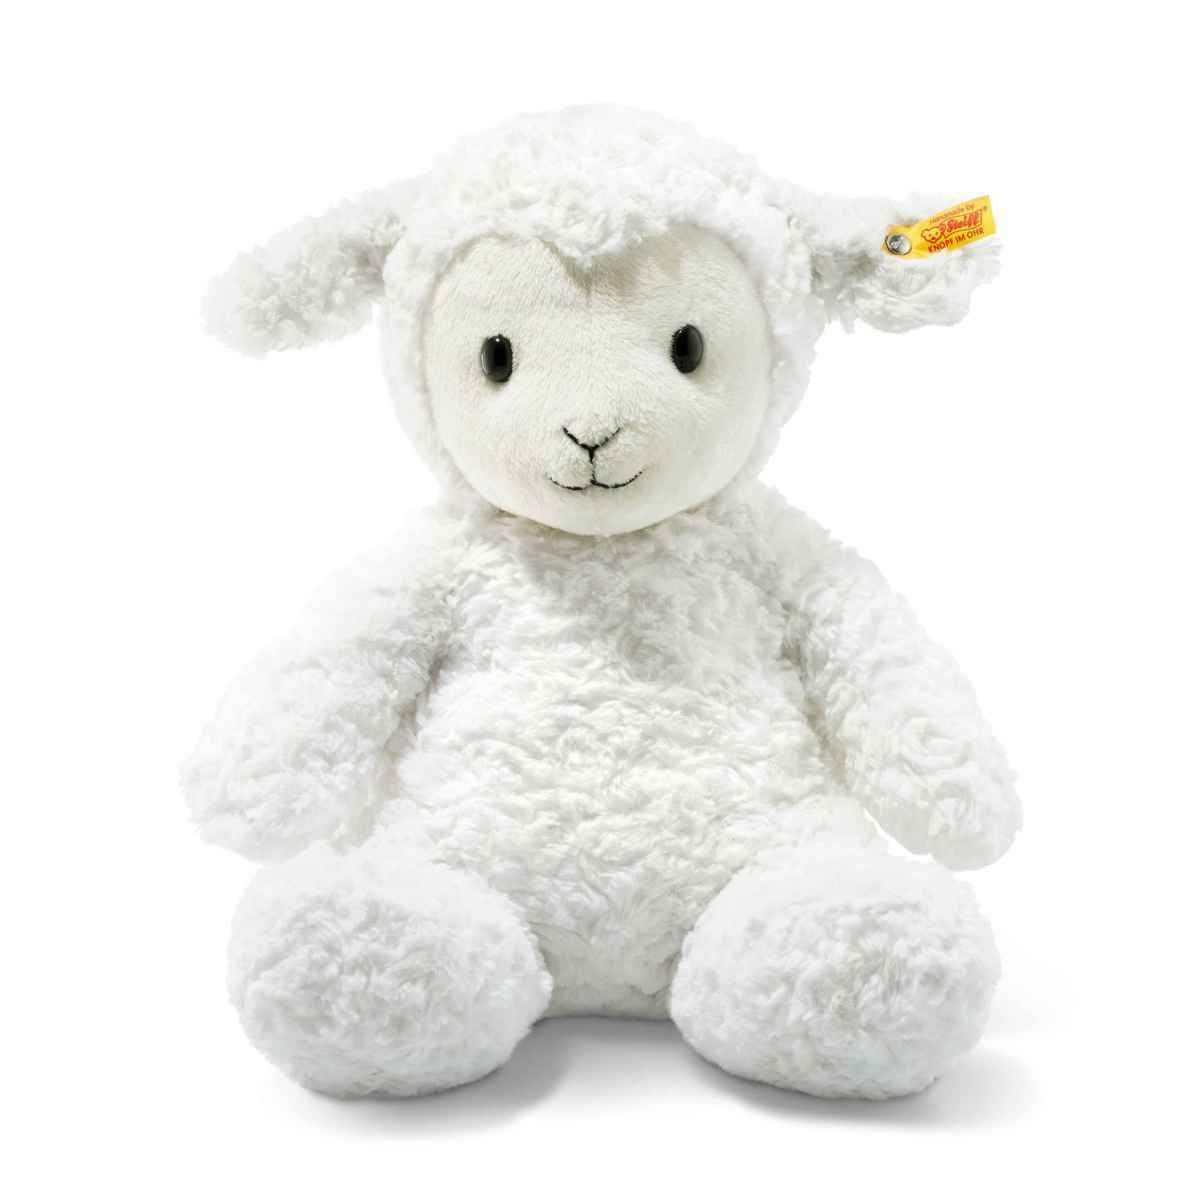 Steiff 073434 Soft Cuddly Friends Fuzzy Lamb Large Large Large with FREE gift Box 609dbd